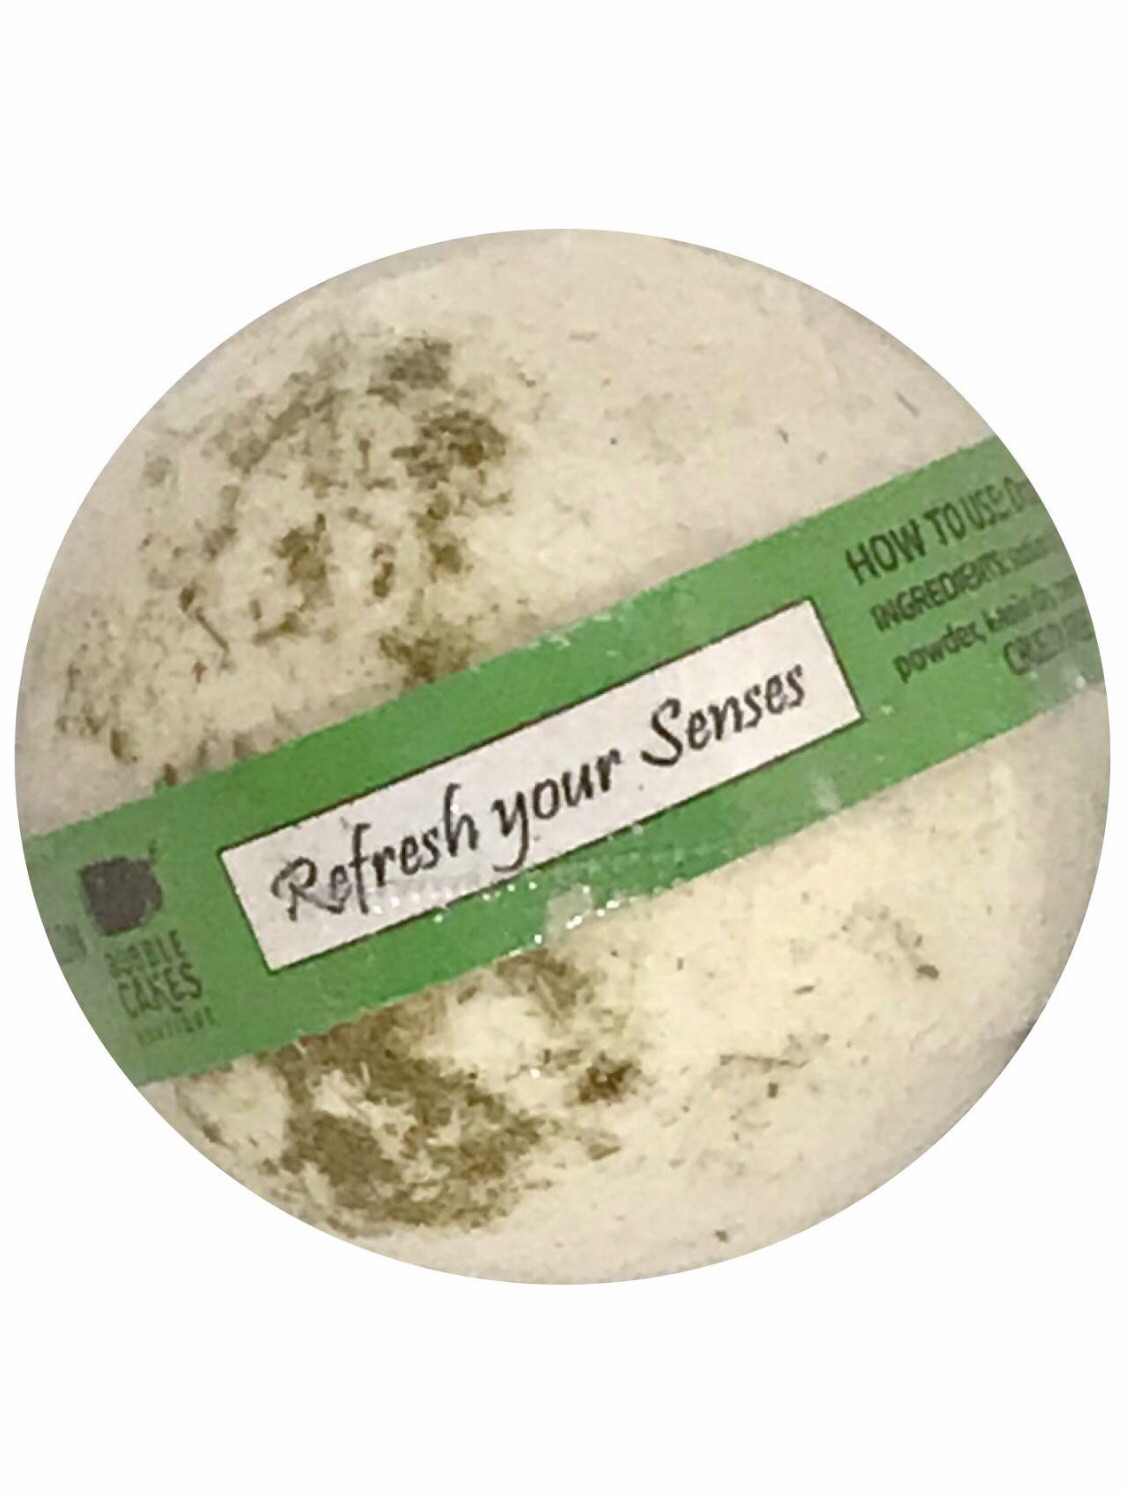 Refresh your Senses Bath Bomb